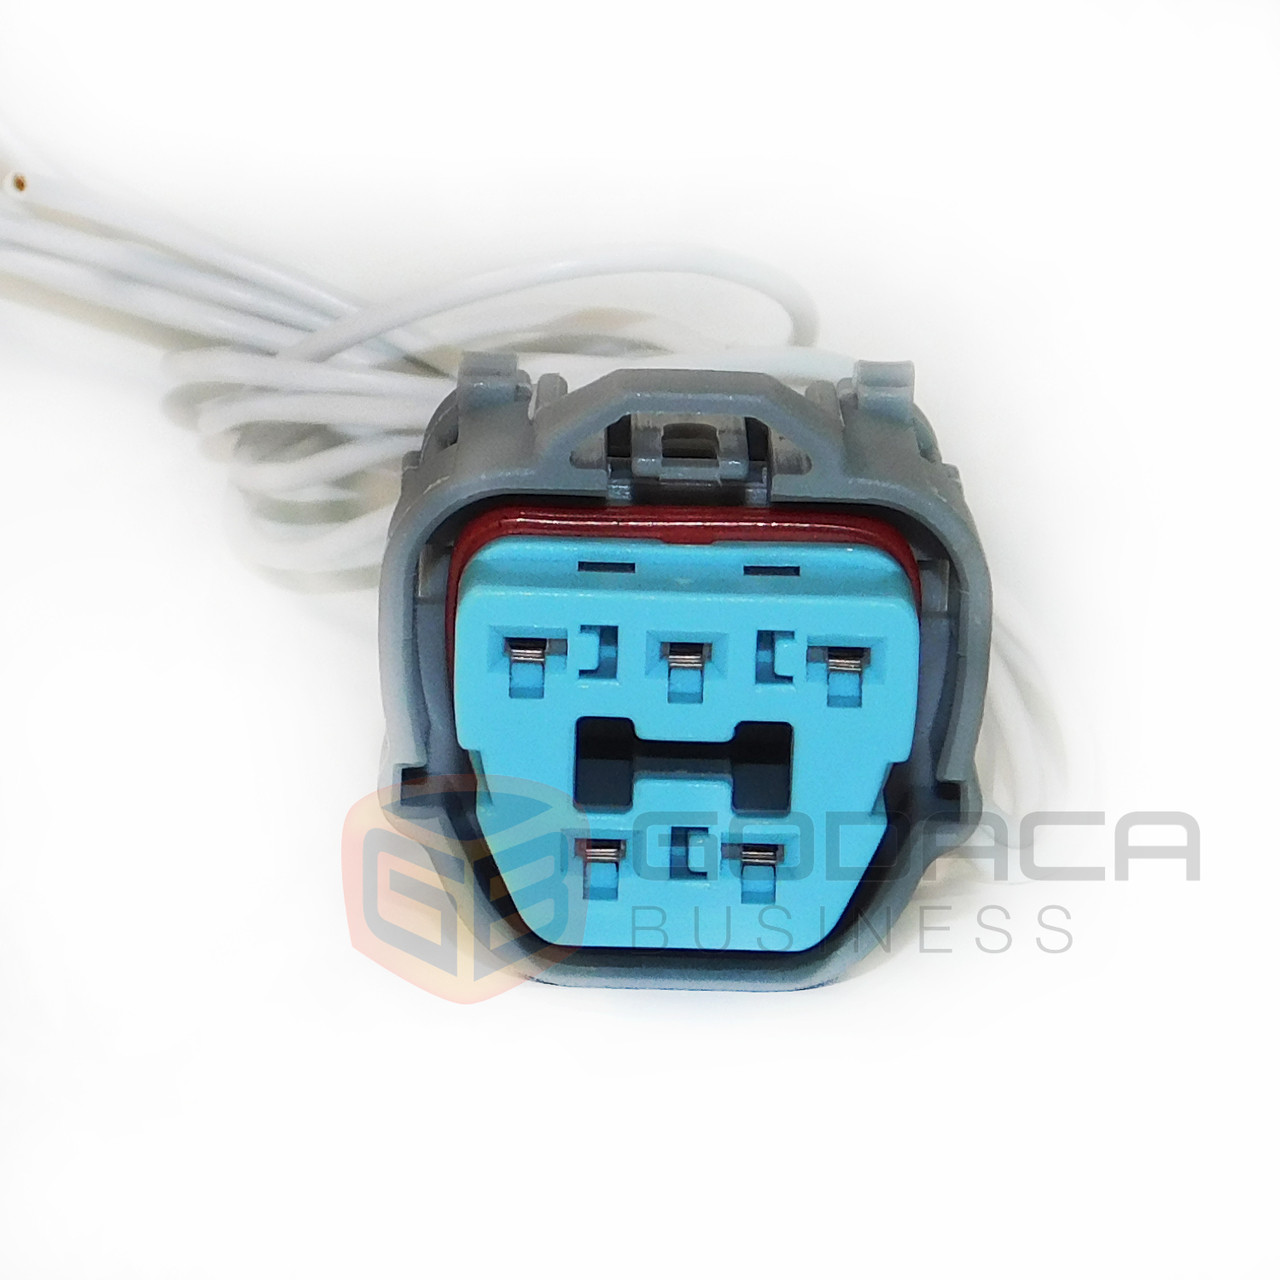 Honda Wiring Harness Pigtails - Free Vehicle Wiring Diagrams •